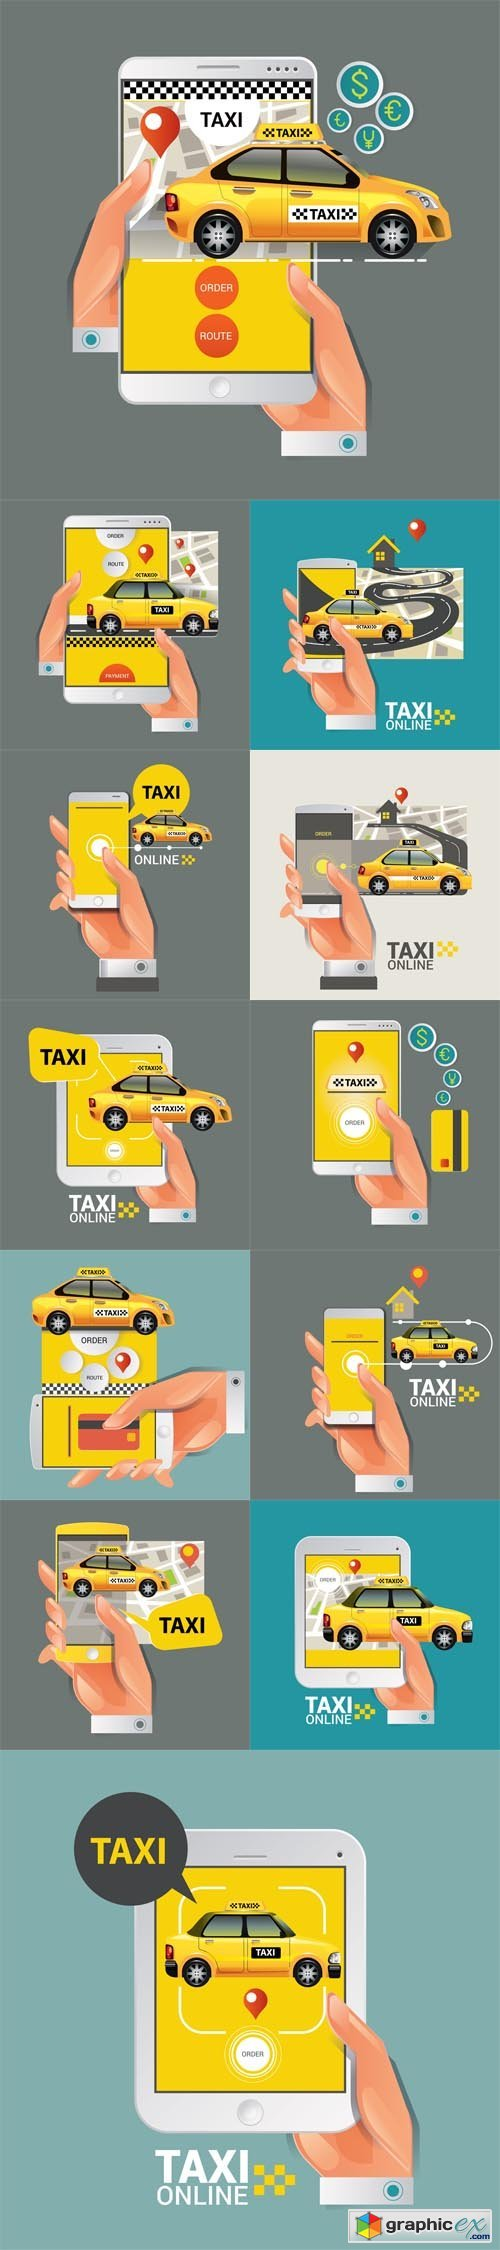 Taxi on line. Taxi sign. Taxi service on smart phone